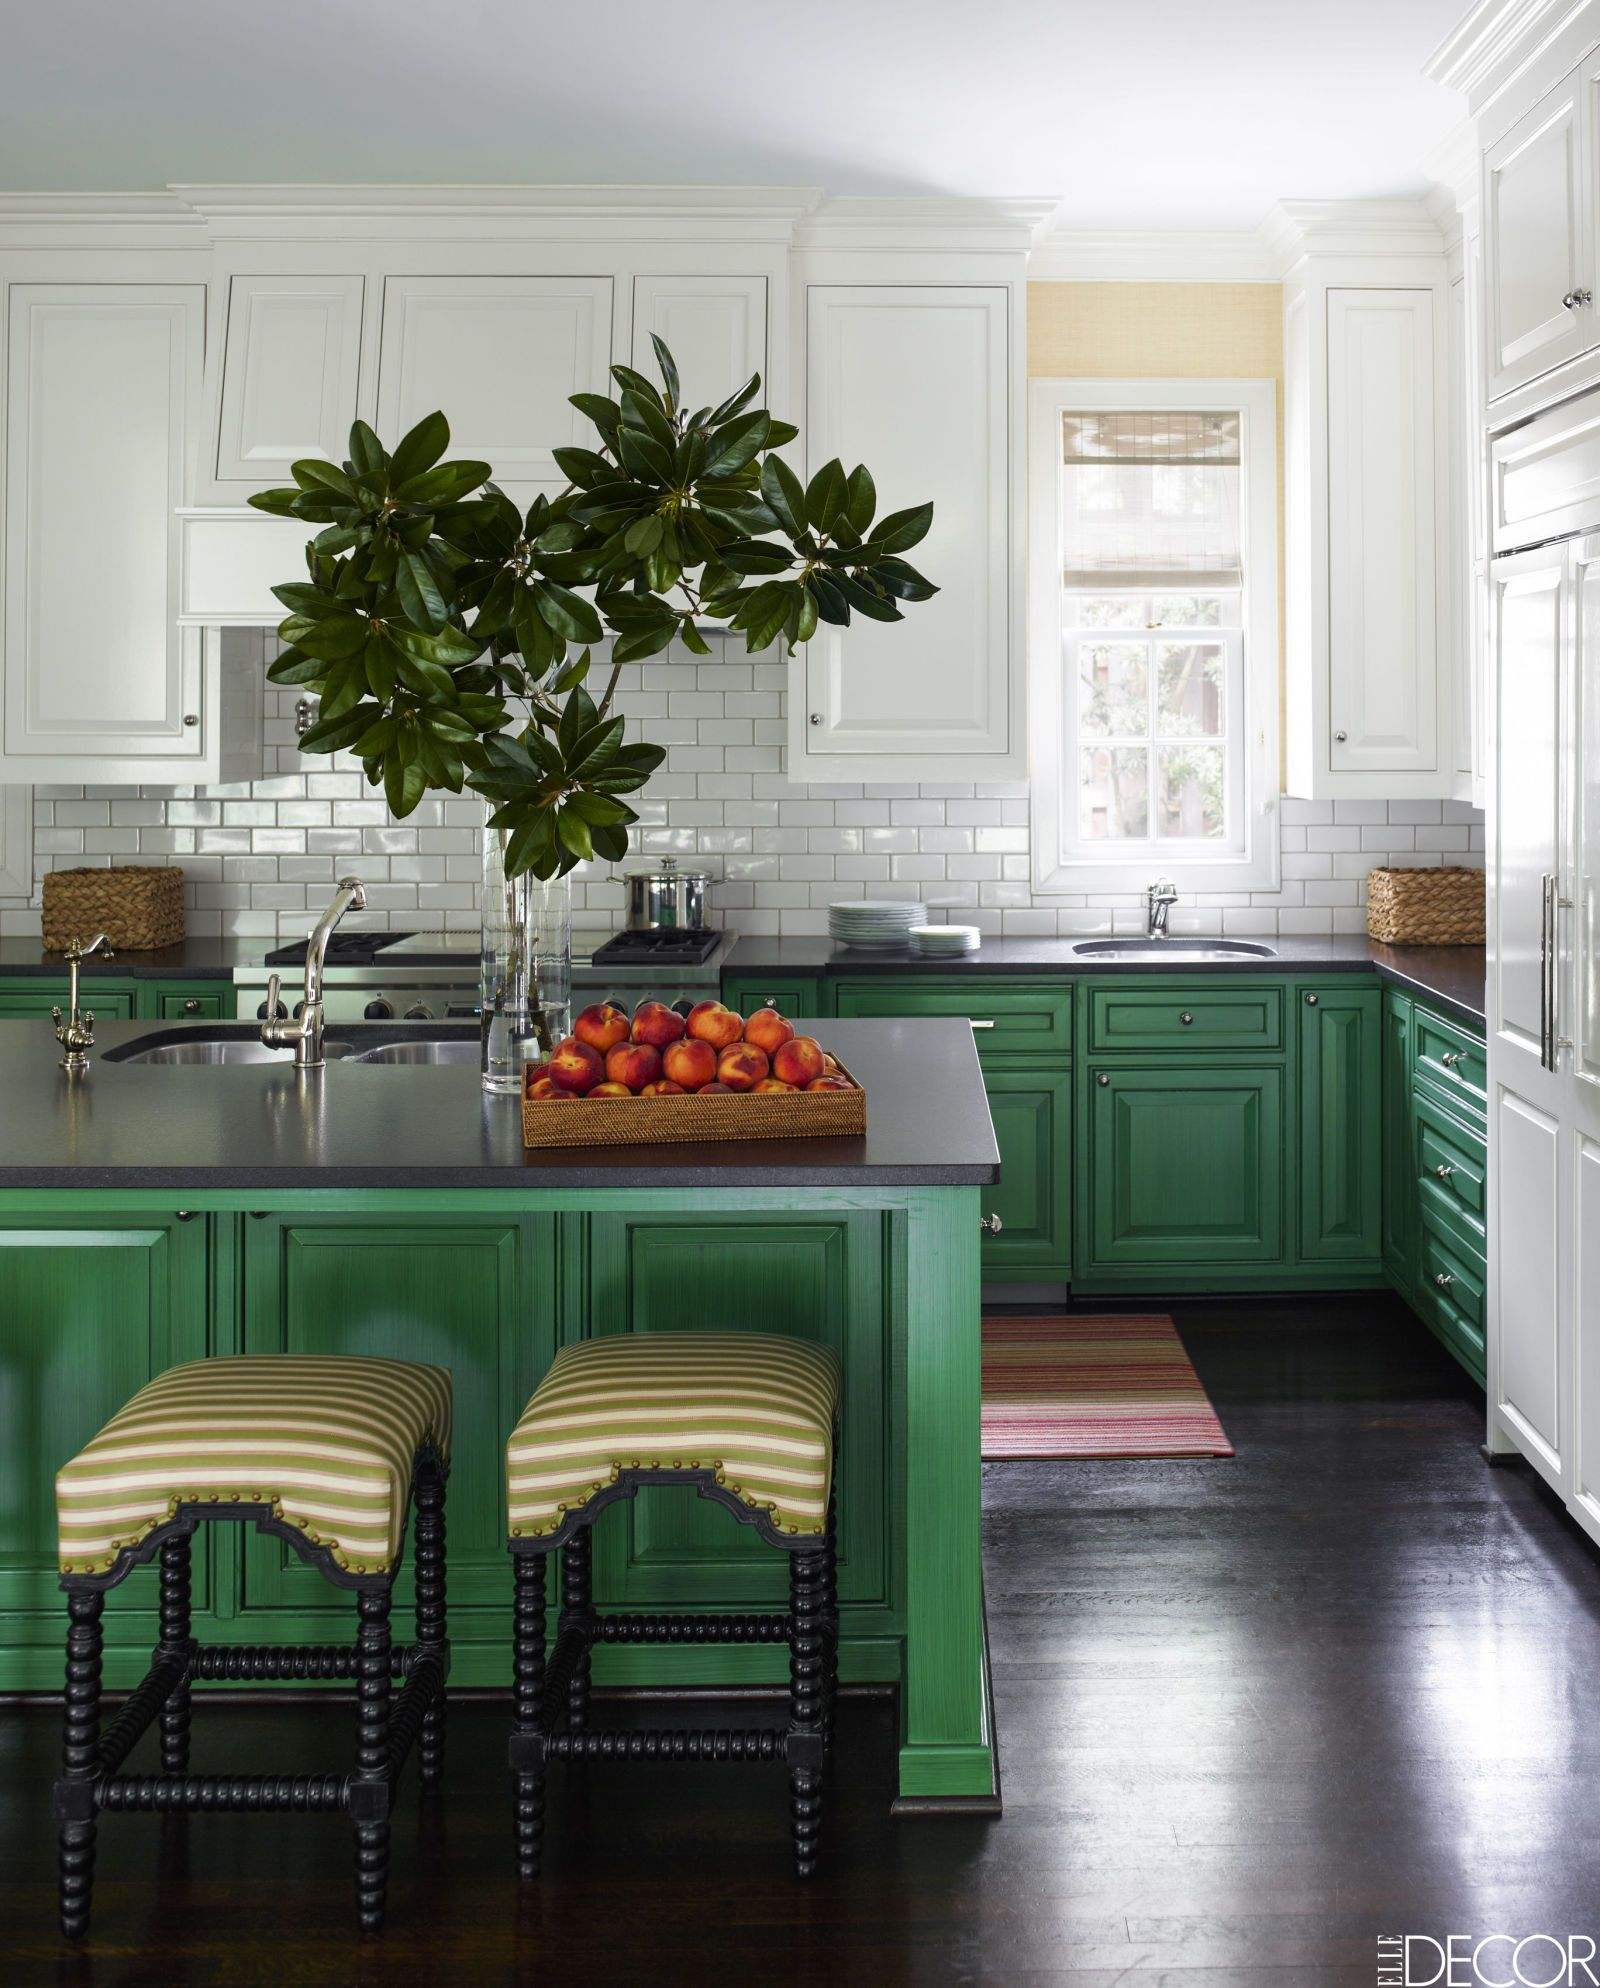 HOUSE TOUR: Color Takes Center Stage In A Bold Houston Home ...